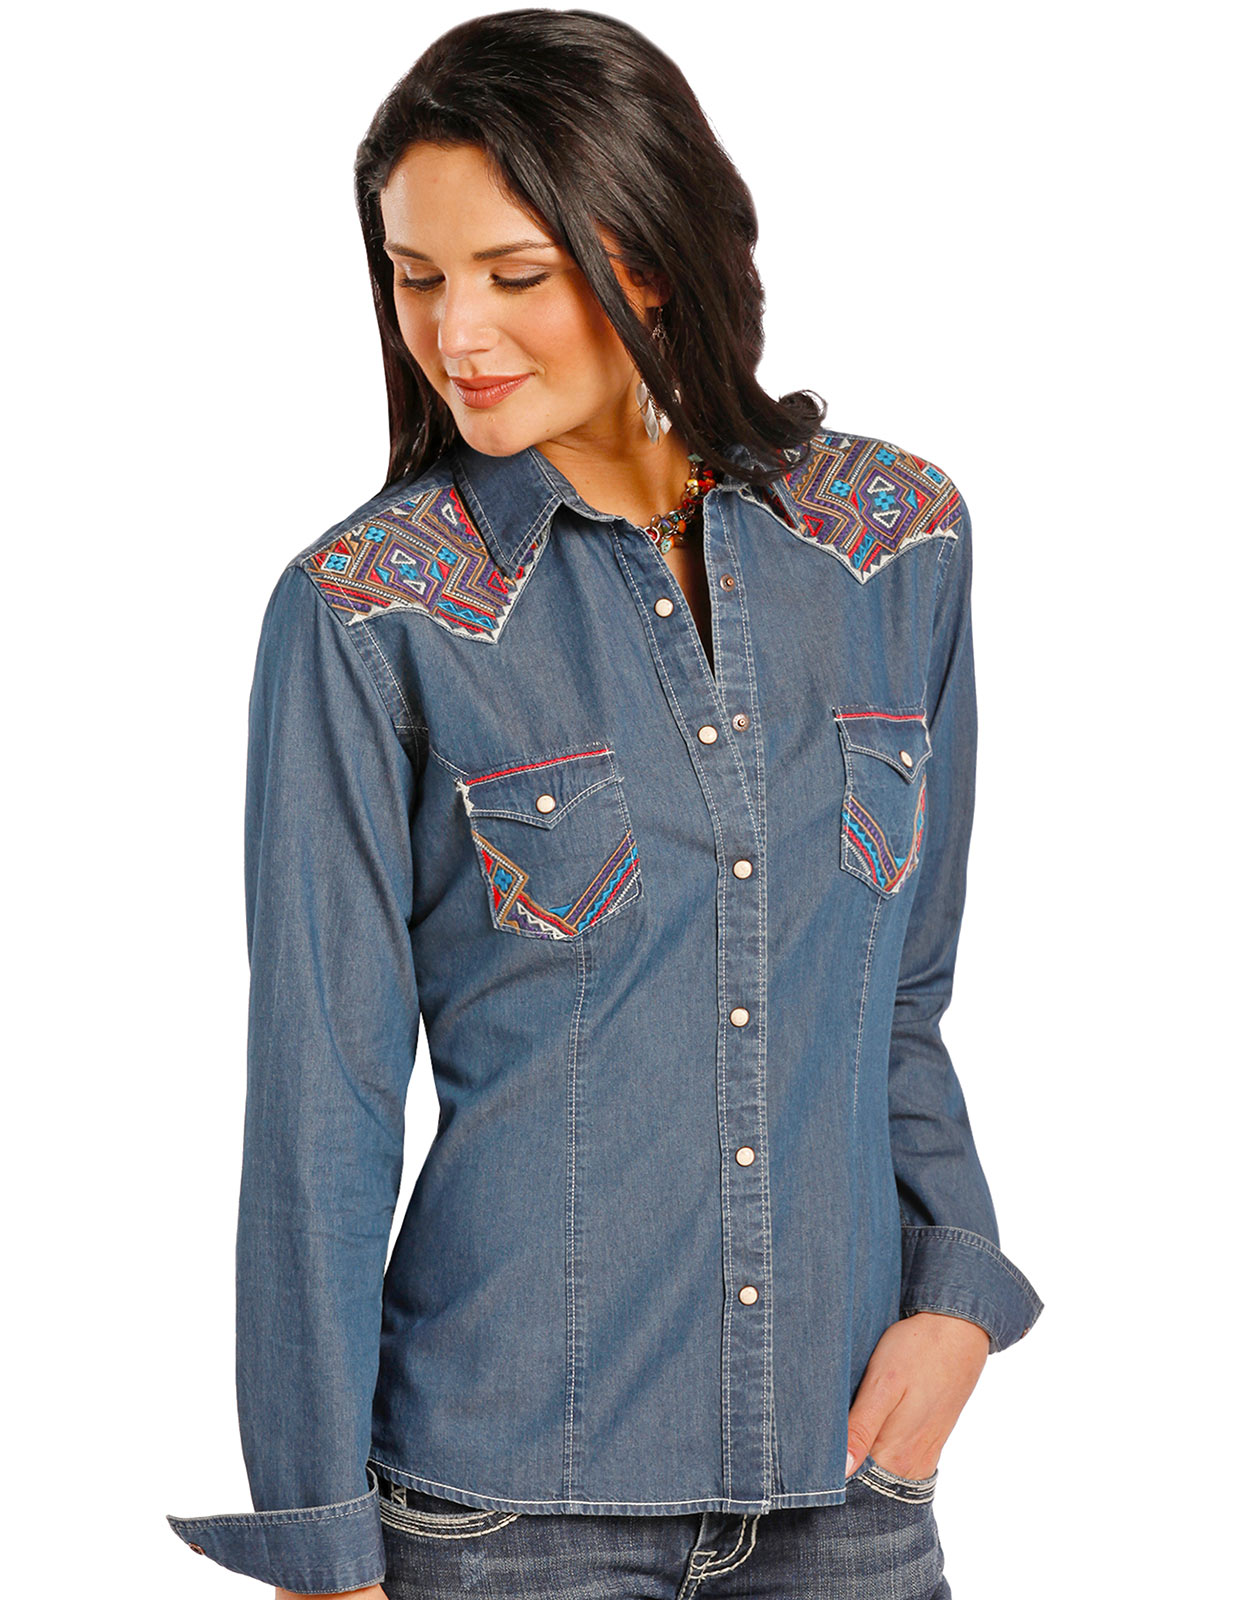 Rough Stock Women's Long Sleeve Embroidered Chambray Snap Shirt- Blue